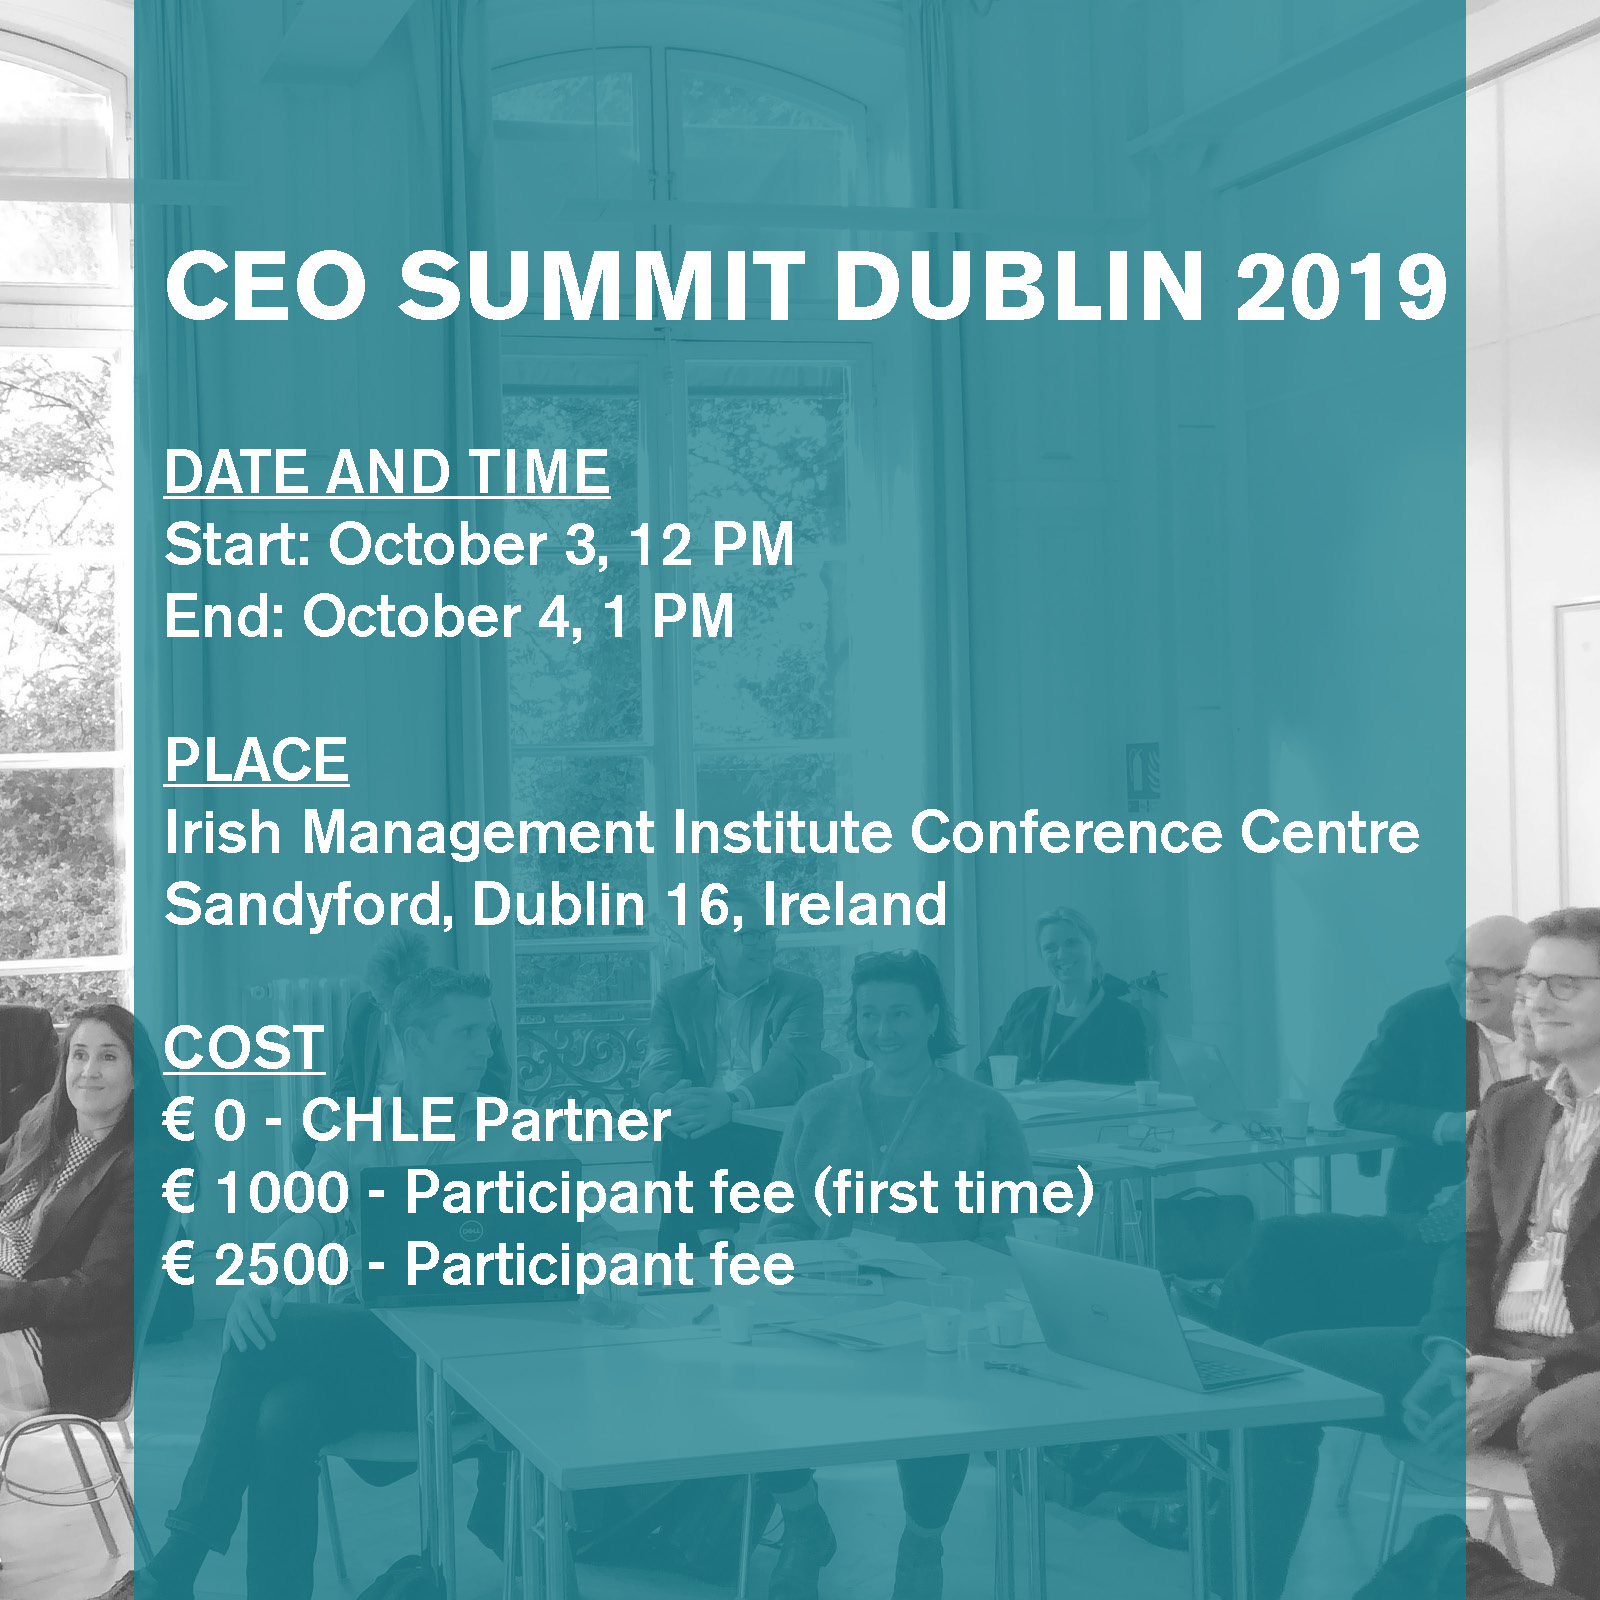 CEO Summit Dublin 2019 info: